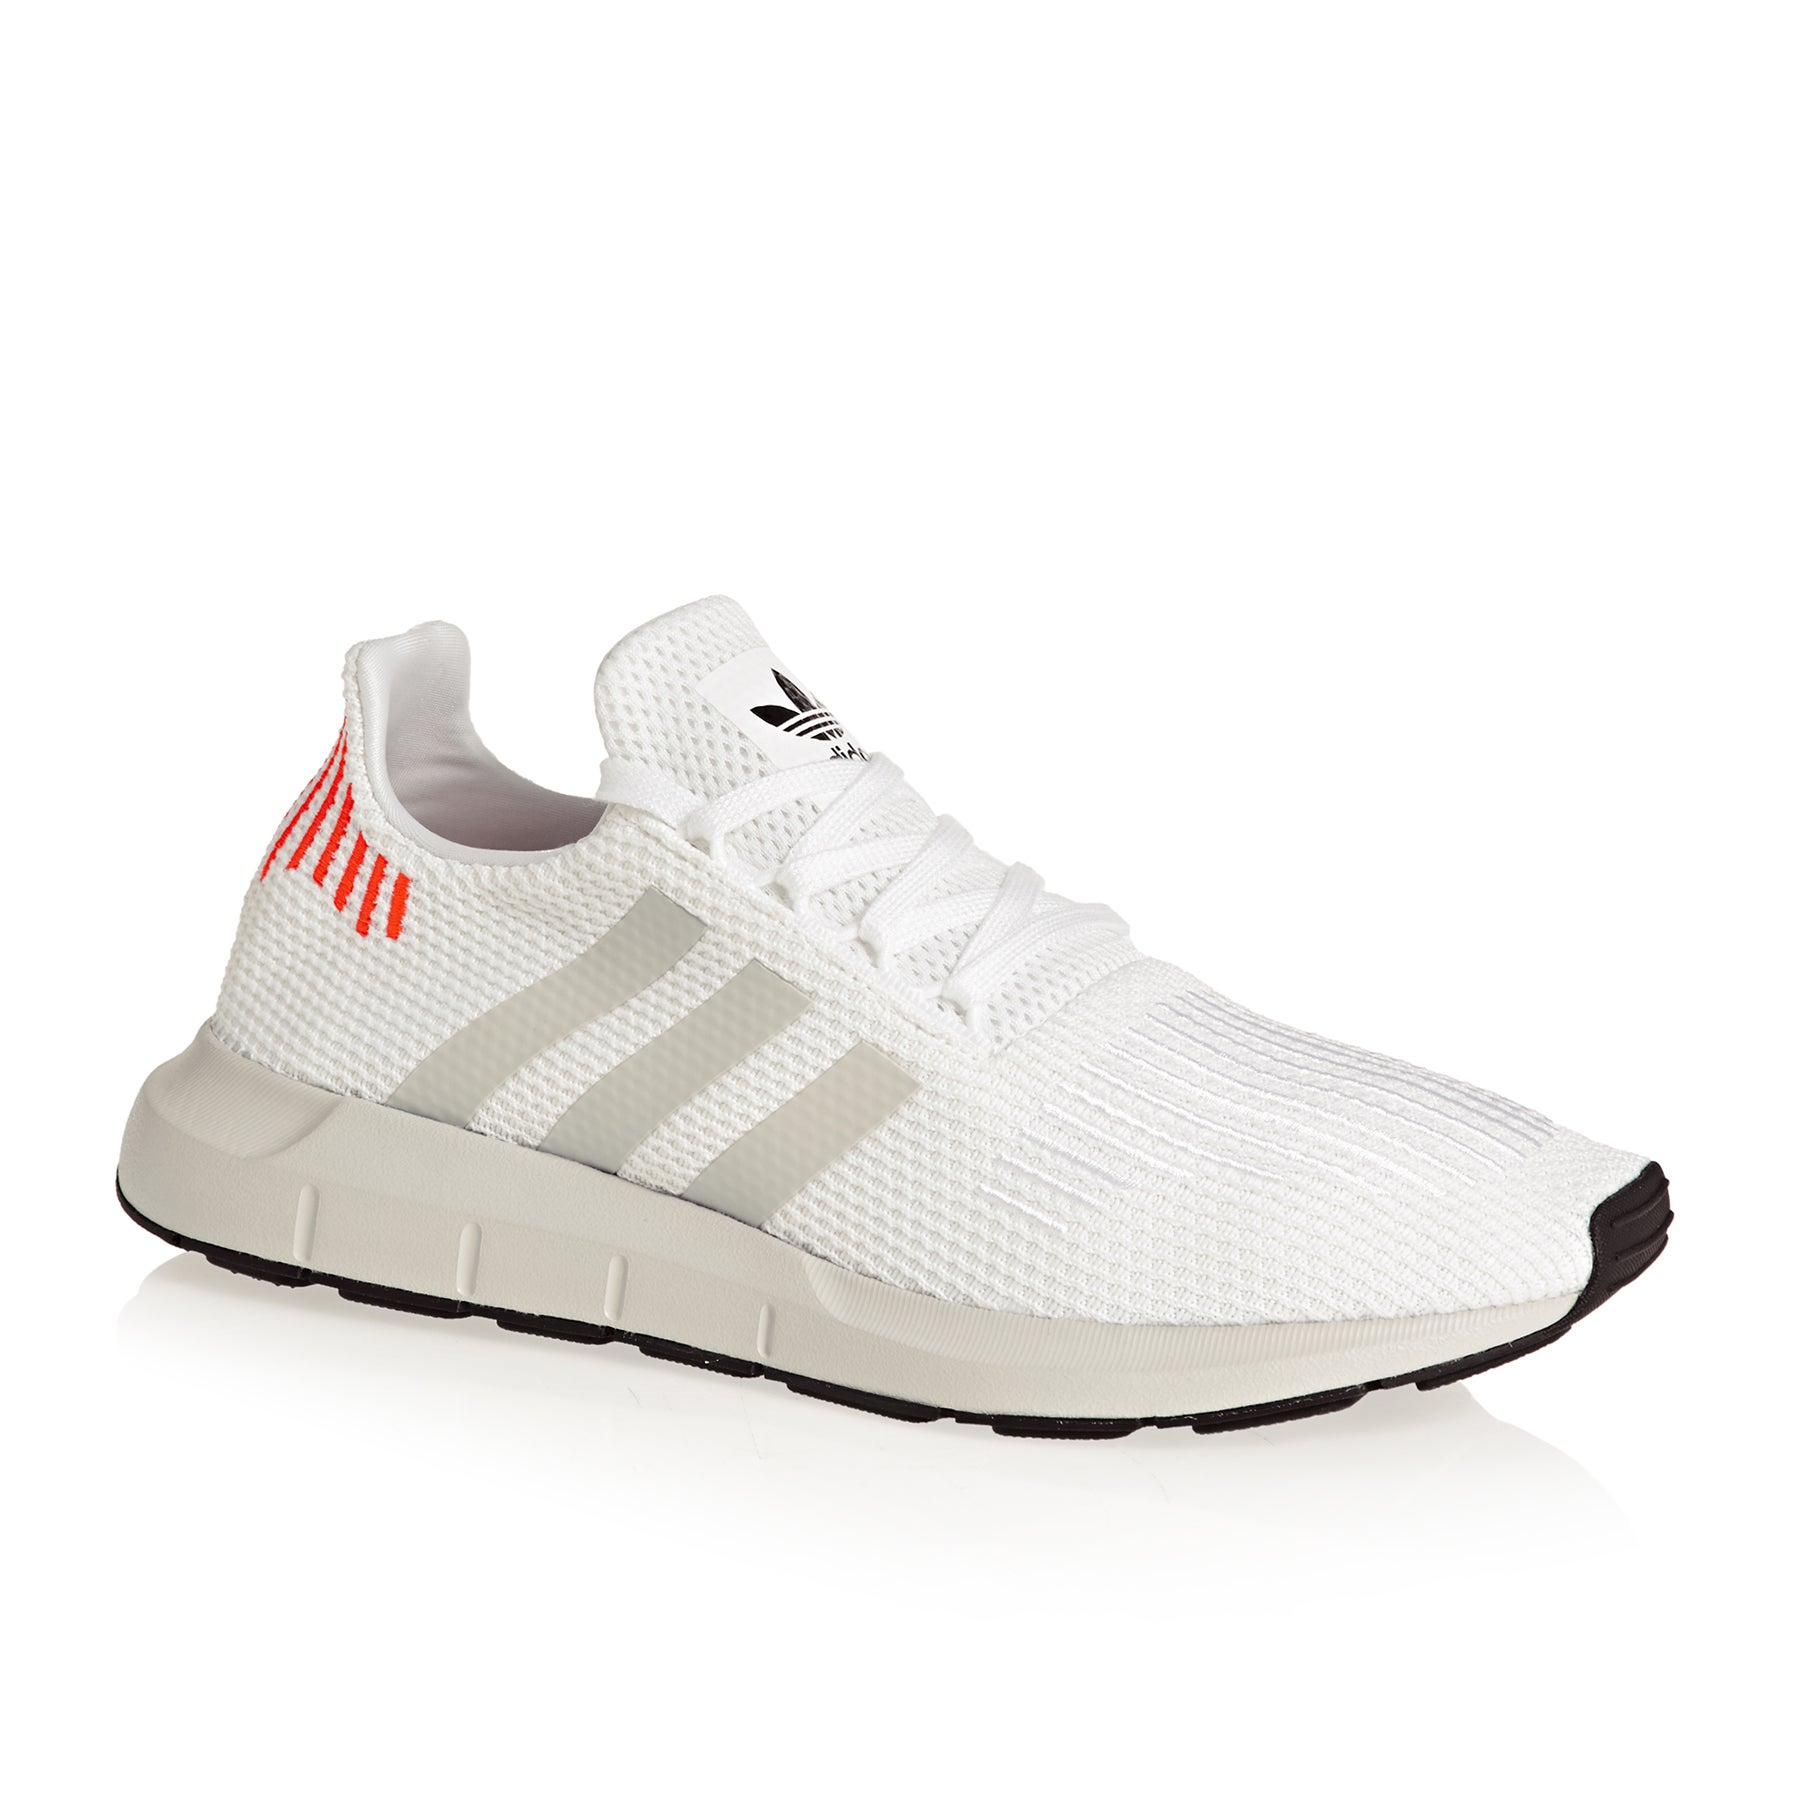 999b134c9ae2 Adidas Originals Swift Run Shoes available from Surfdome